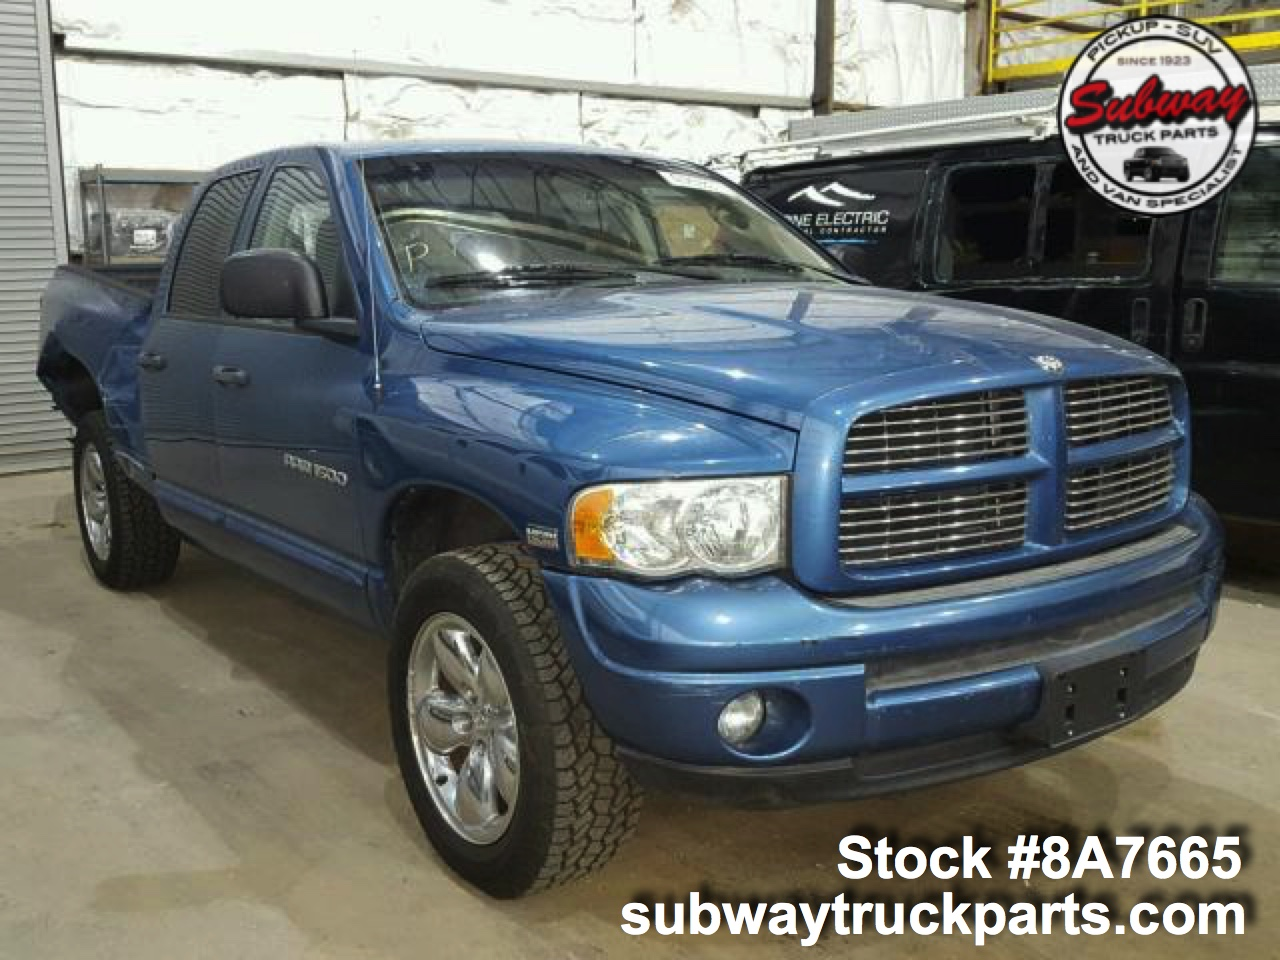 used 2004 dodge ram 1500 parts for sale subway truck parts. Black Bedroom Furniture Sets. Home Design Ideas